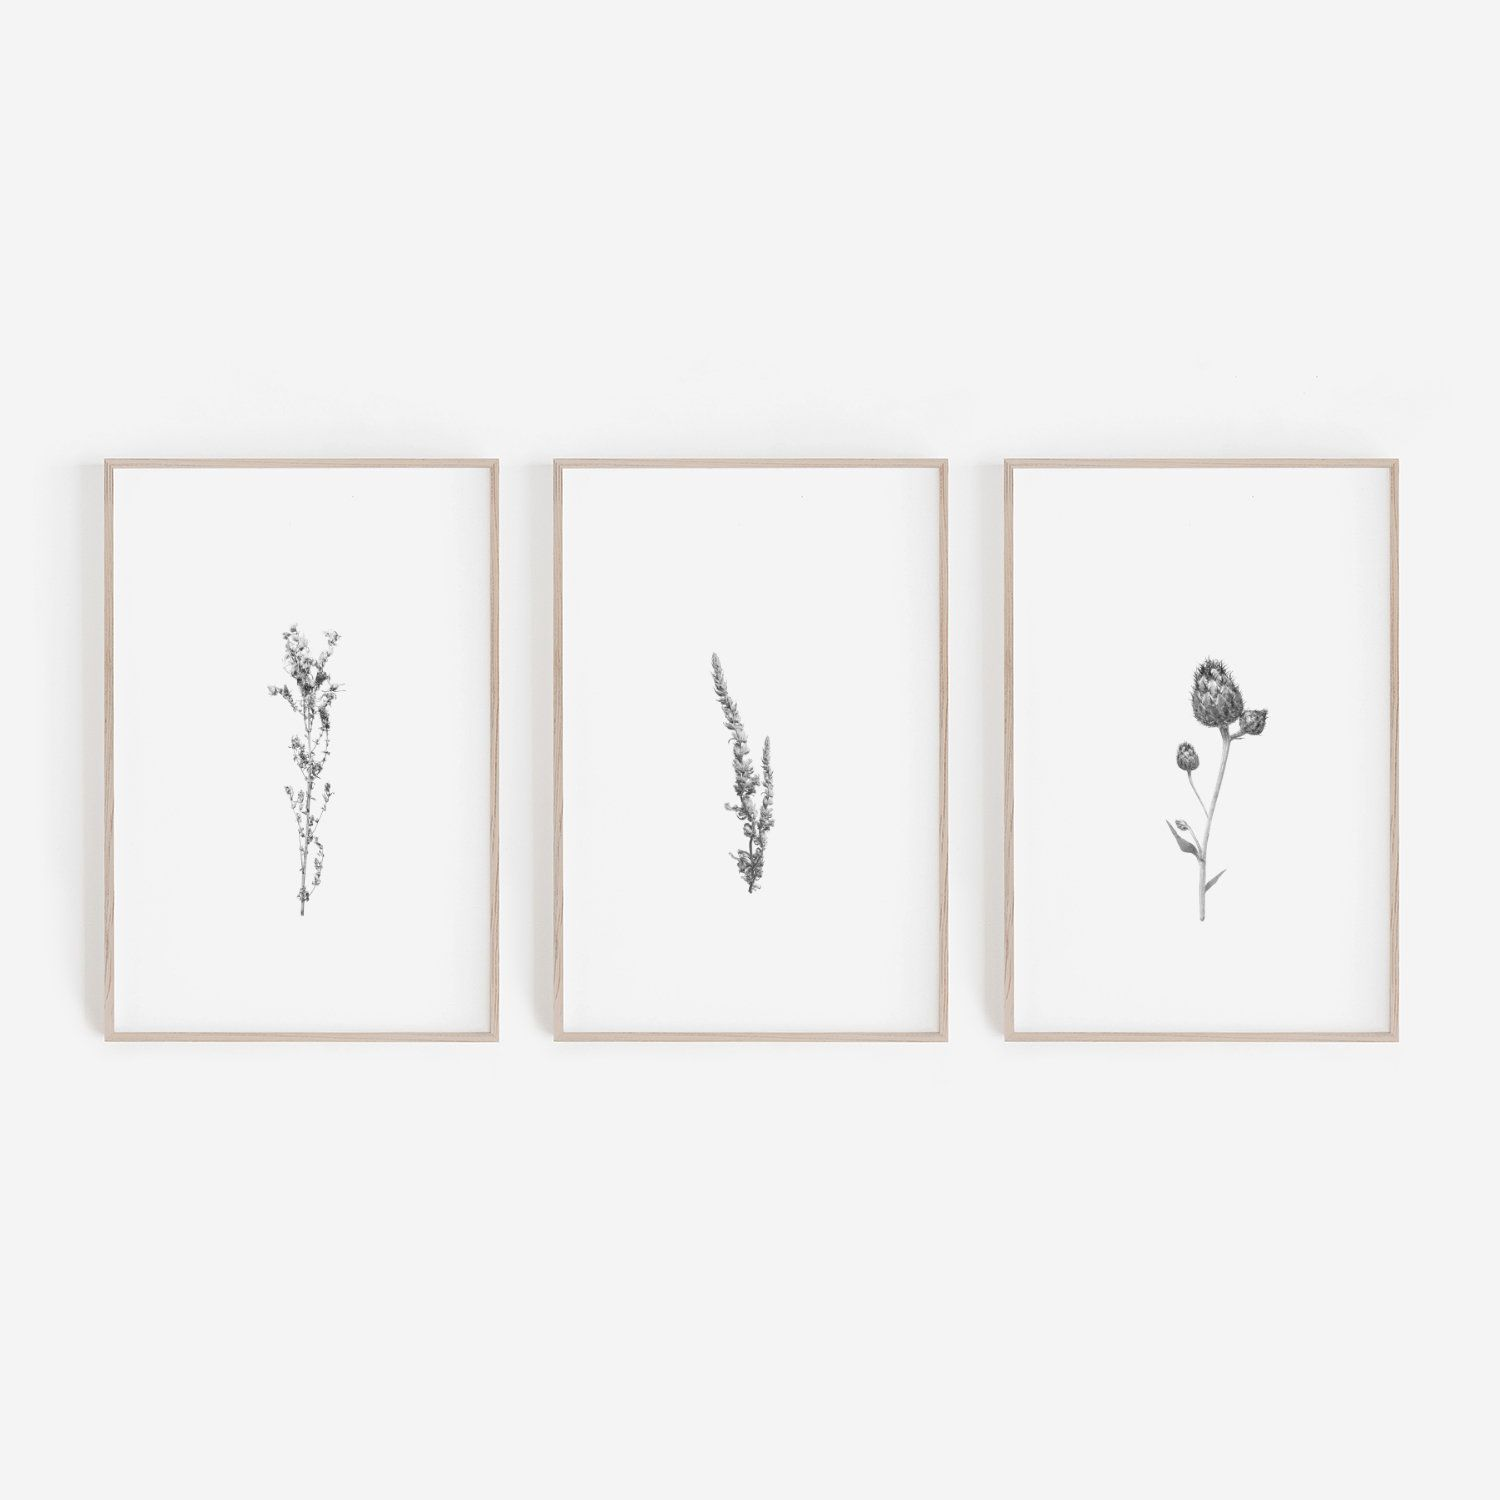 Set of 3 Prints,Black and White Art,Black and White Prints,Minimalist Print,Minimalist Wall Art,Large Wall Art,Prints Set,Prints,Wall Art is part of Living Room Art Prints - heartsincolors Thank you for visiting our shop